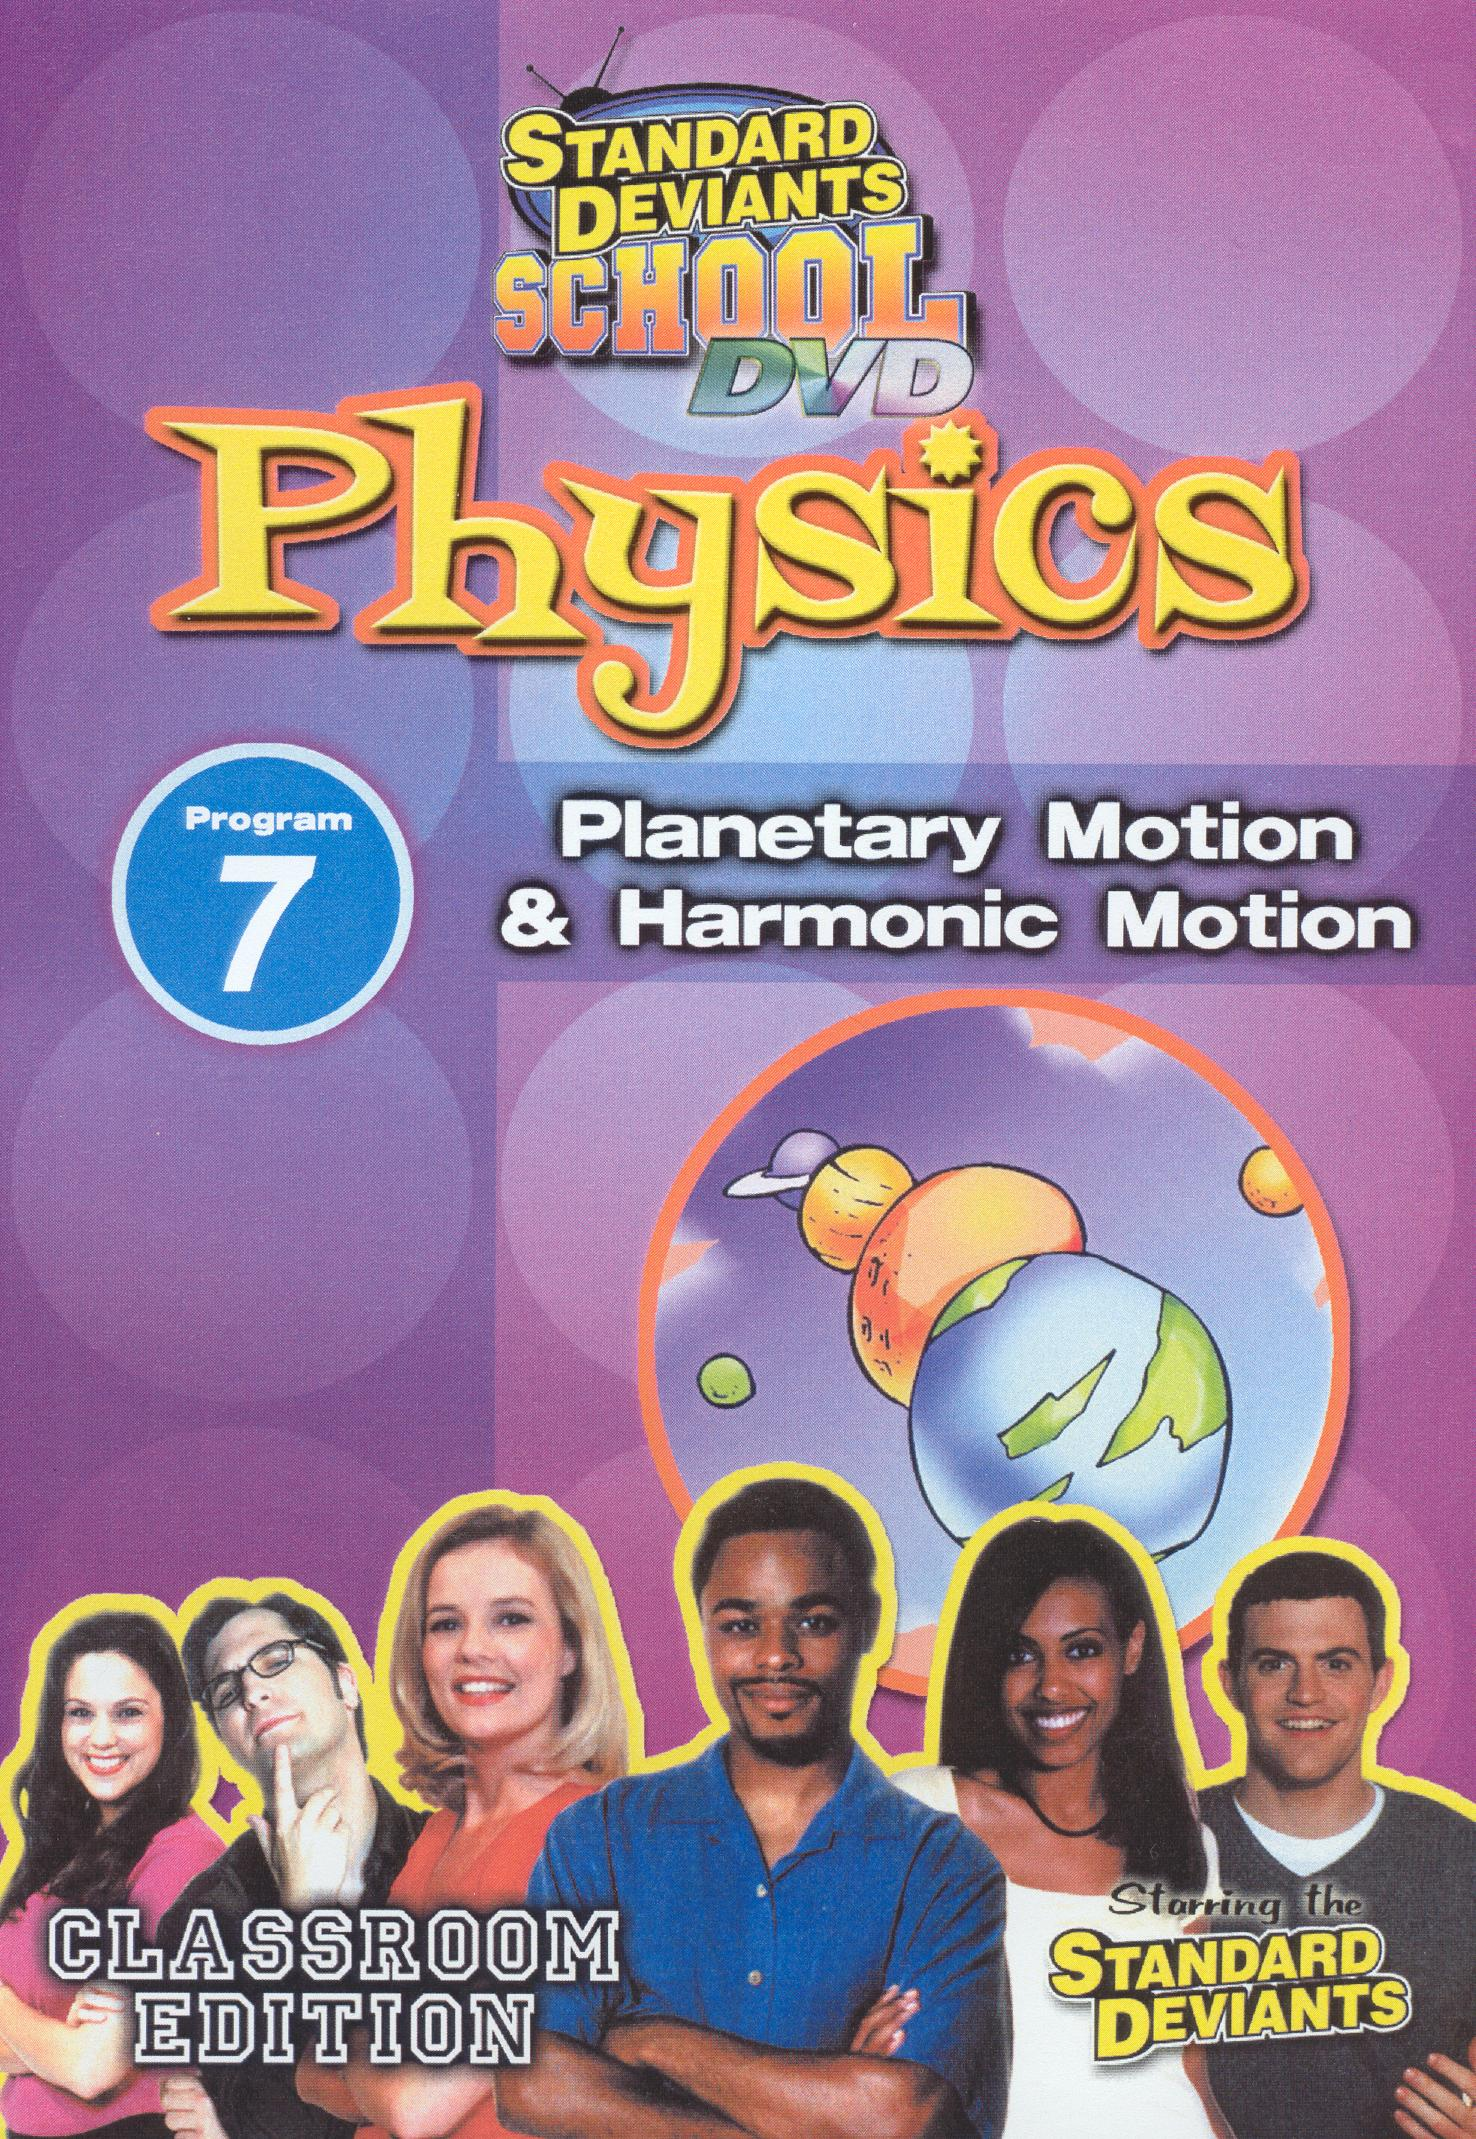 Standard Deviants School: Physics, Program 7 - Planetary Motion and Harmonic Motion